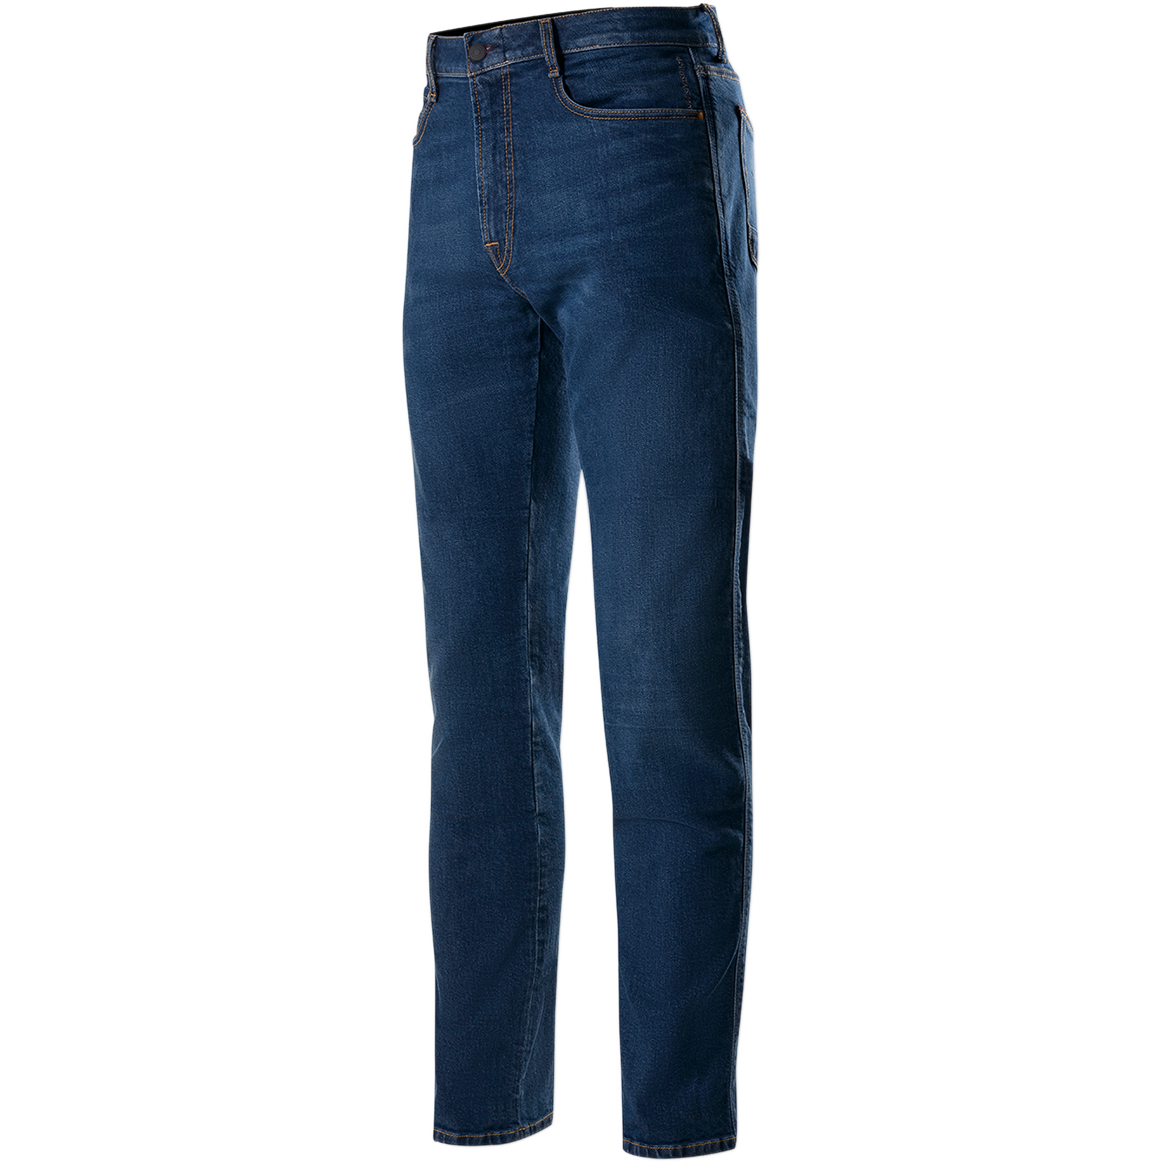 Copper 2 Denim Pants